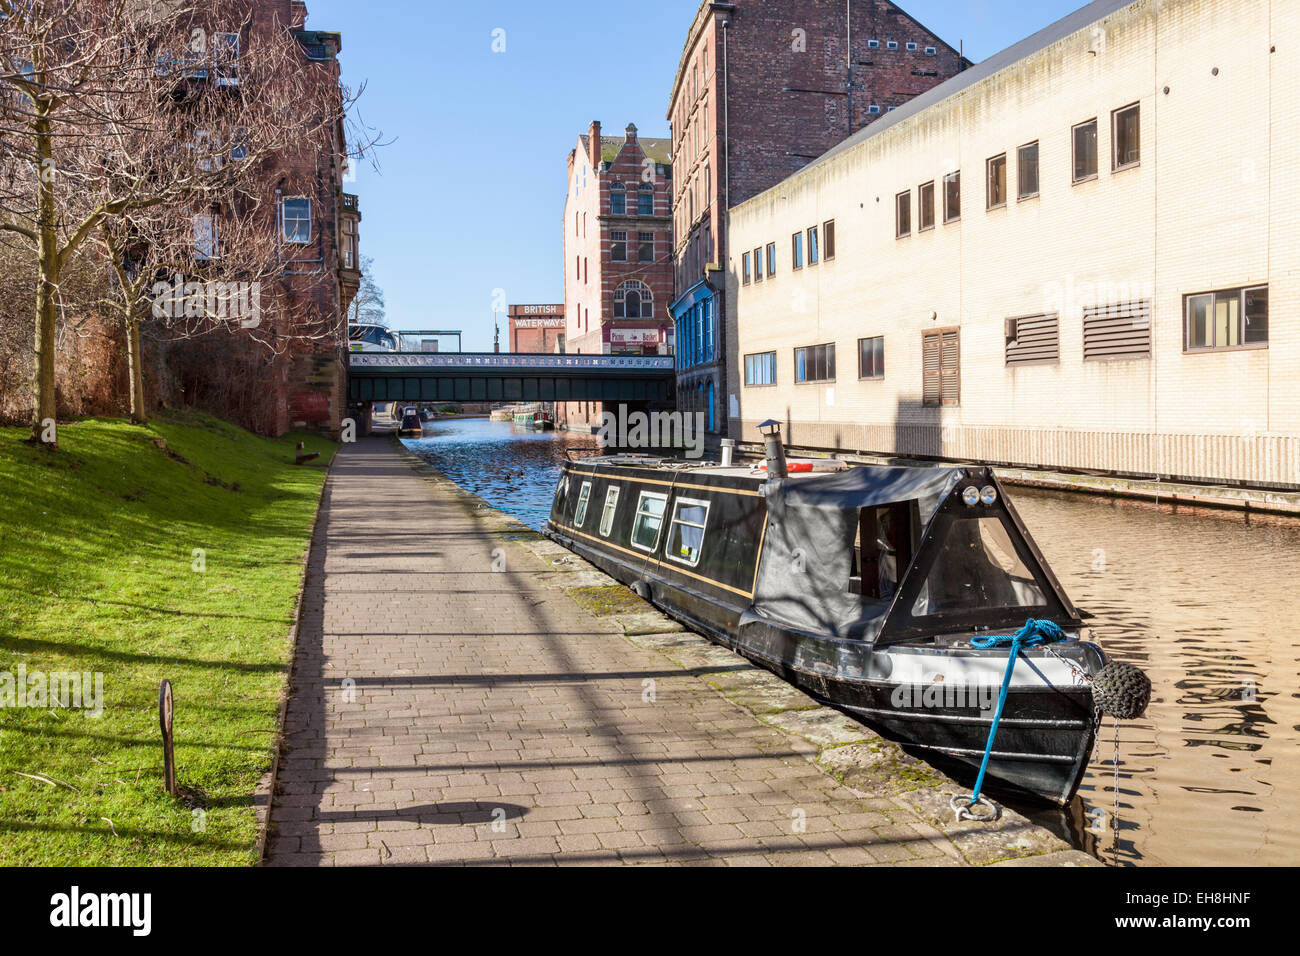 Narrowboat moored on an old waterway through a city. The Nottingham and Beeston Canal, Nottingham, England, UK - Stock Image